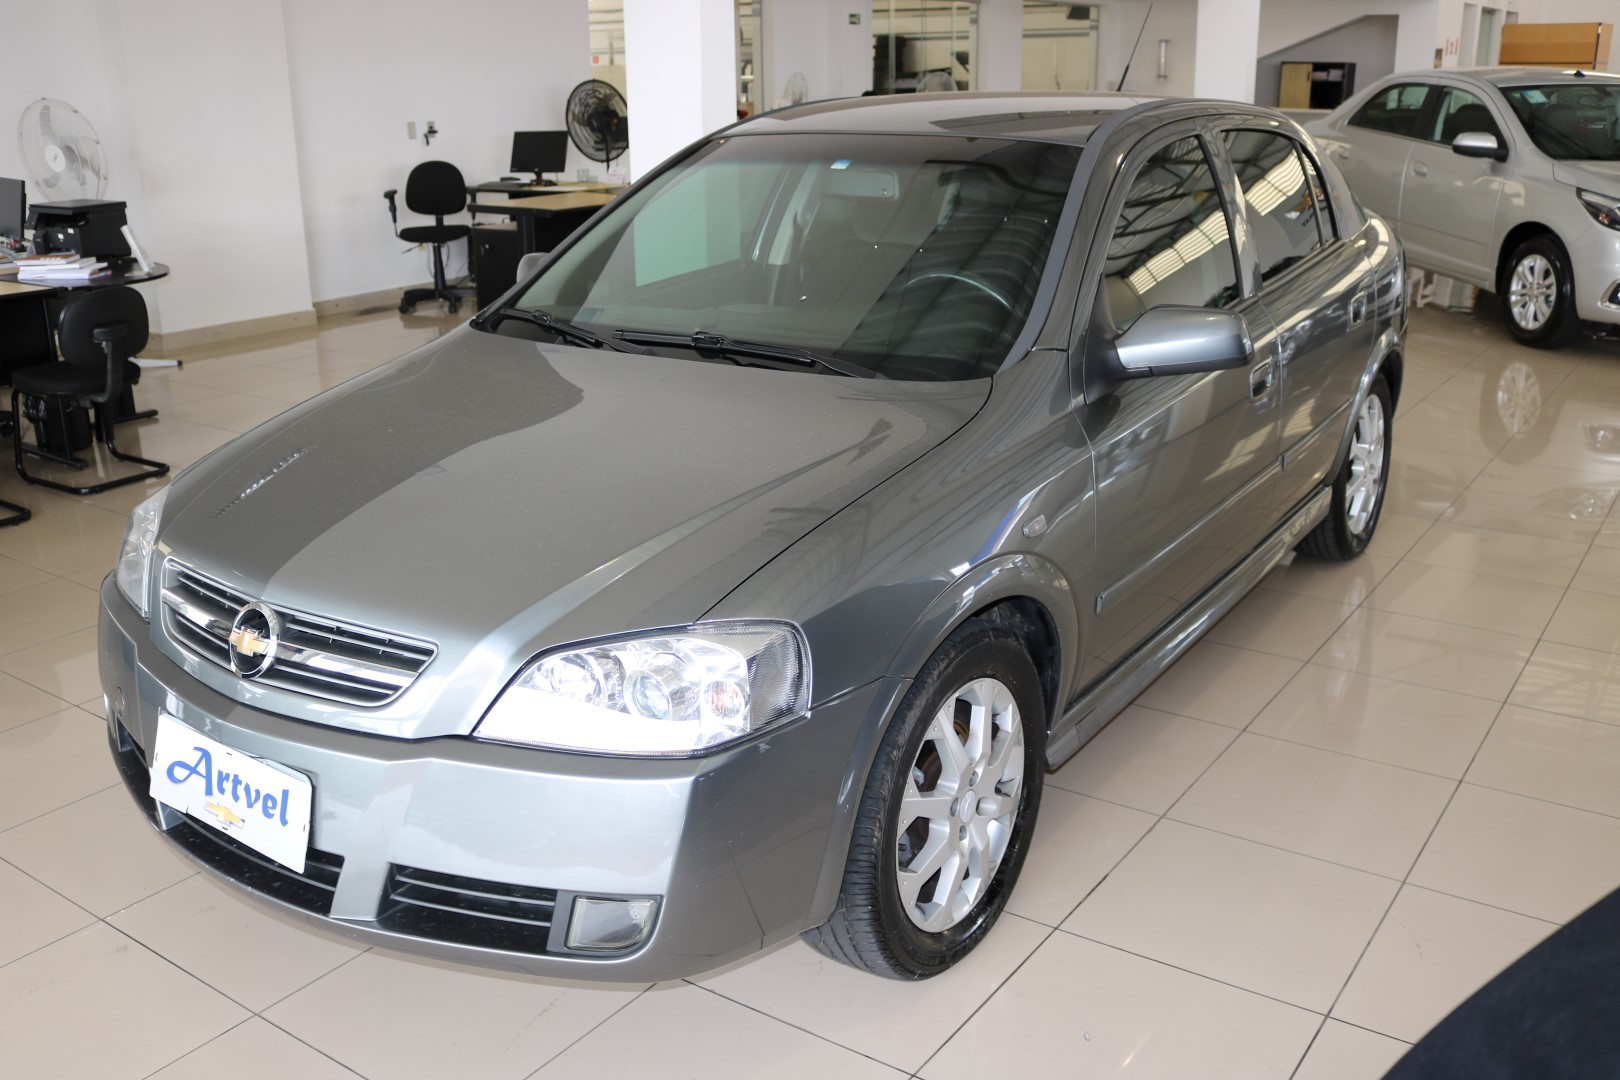 CHEVROLET ASTRA HATCH ADVANTAGE 2.0 2011